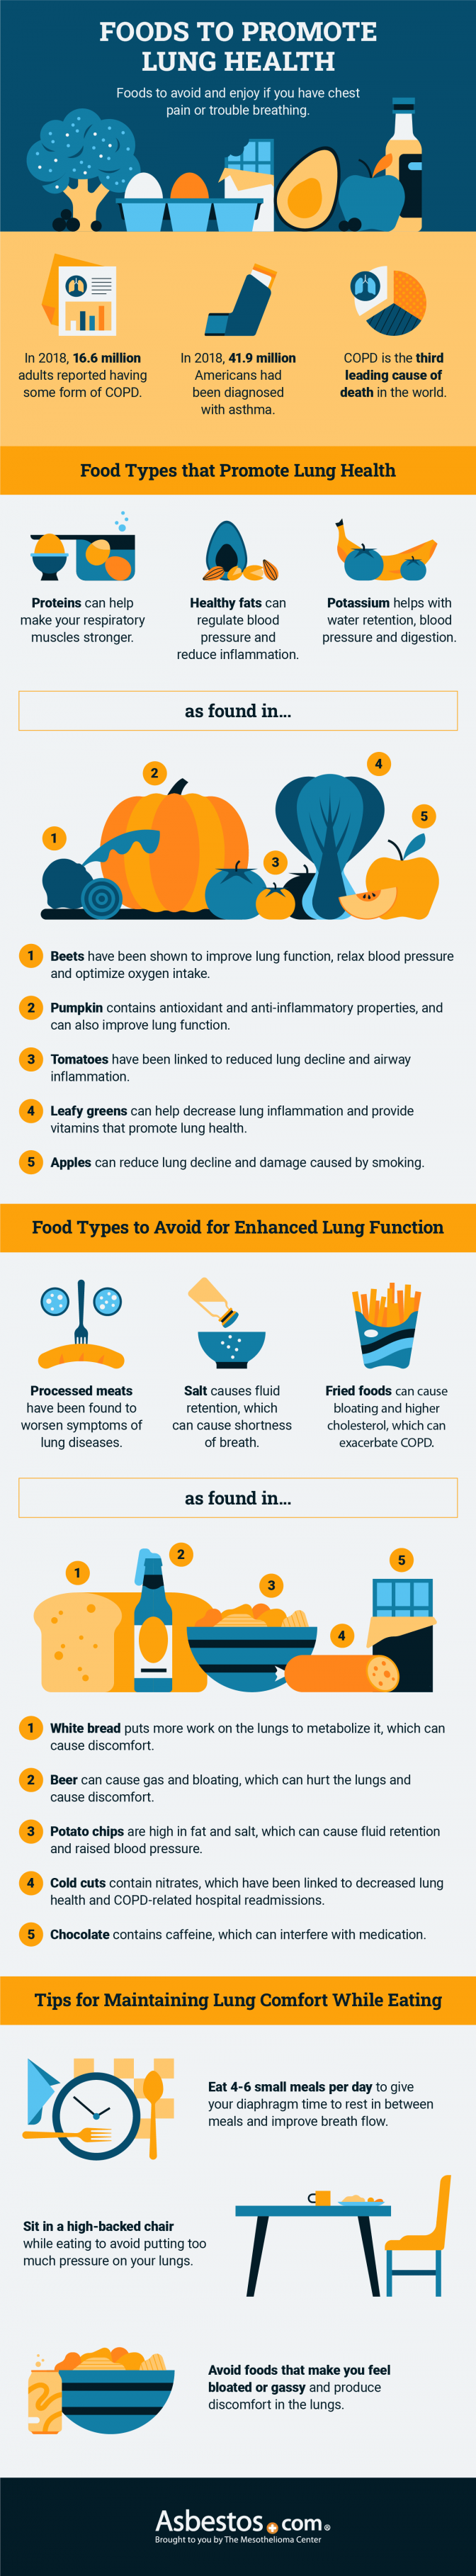 Best foods for lung health infographic